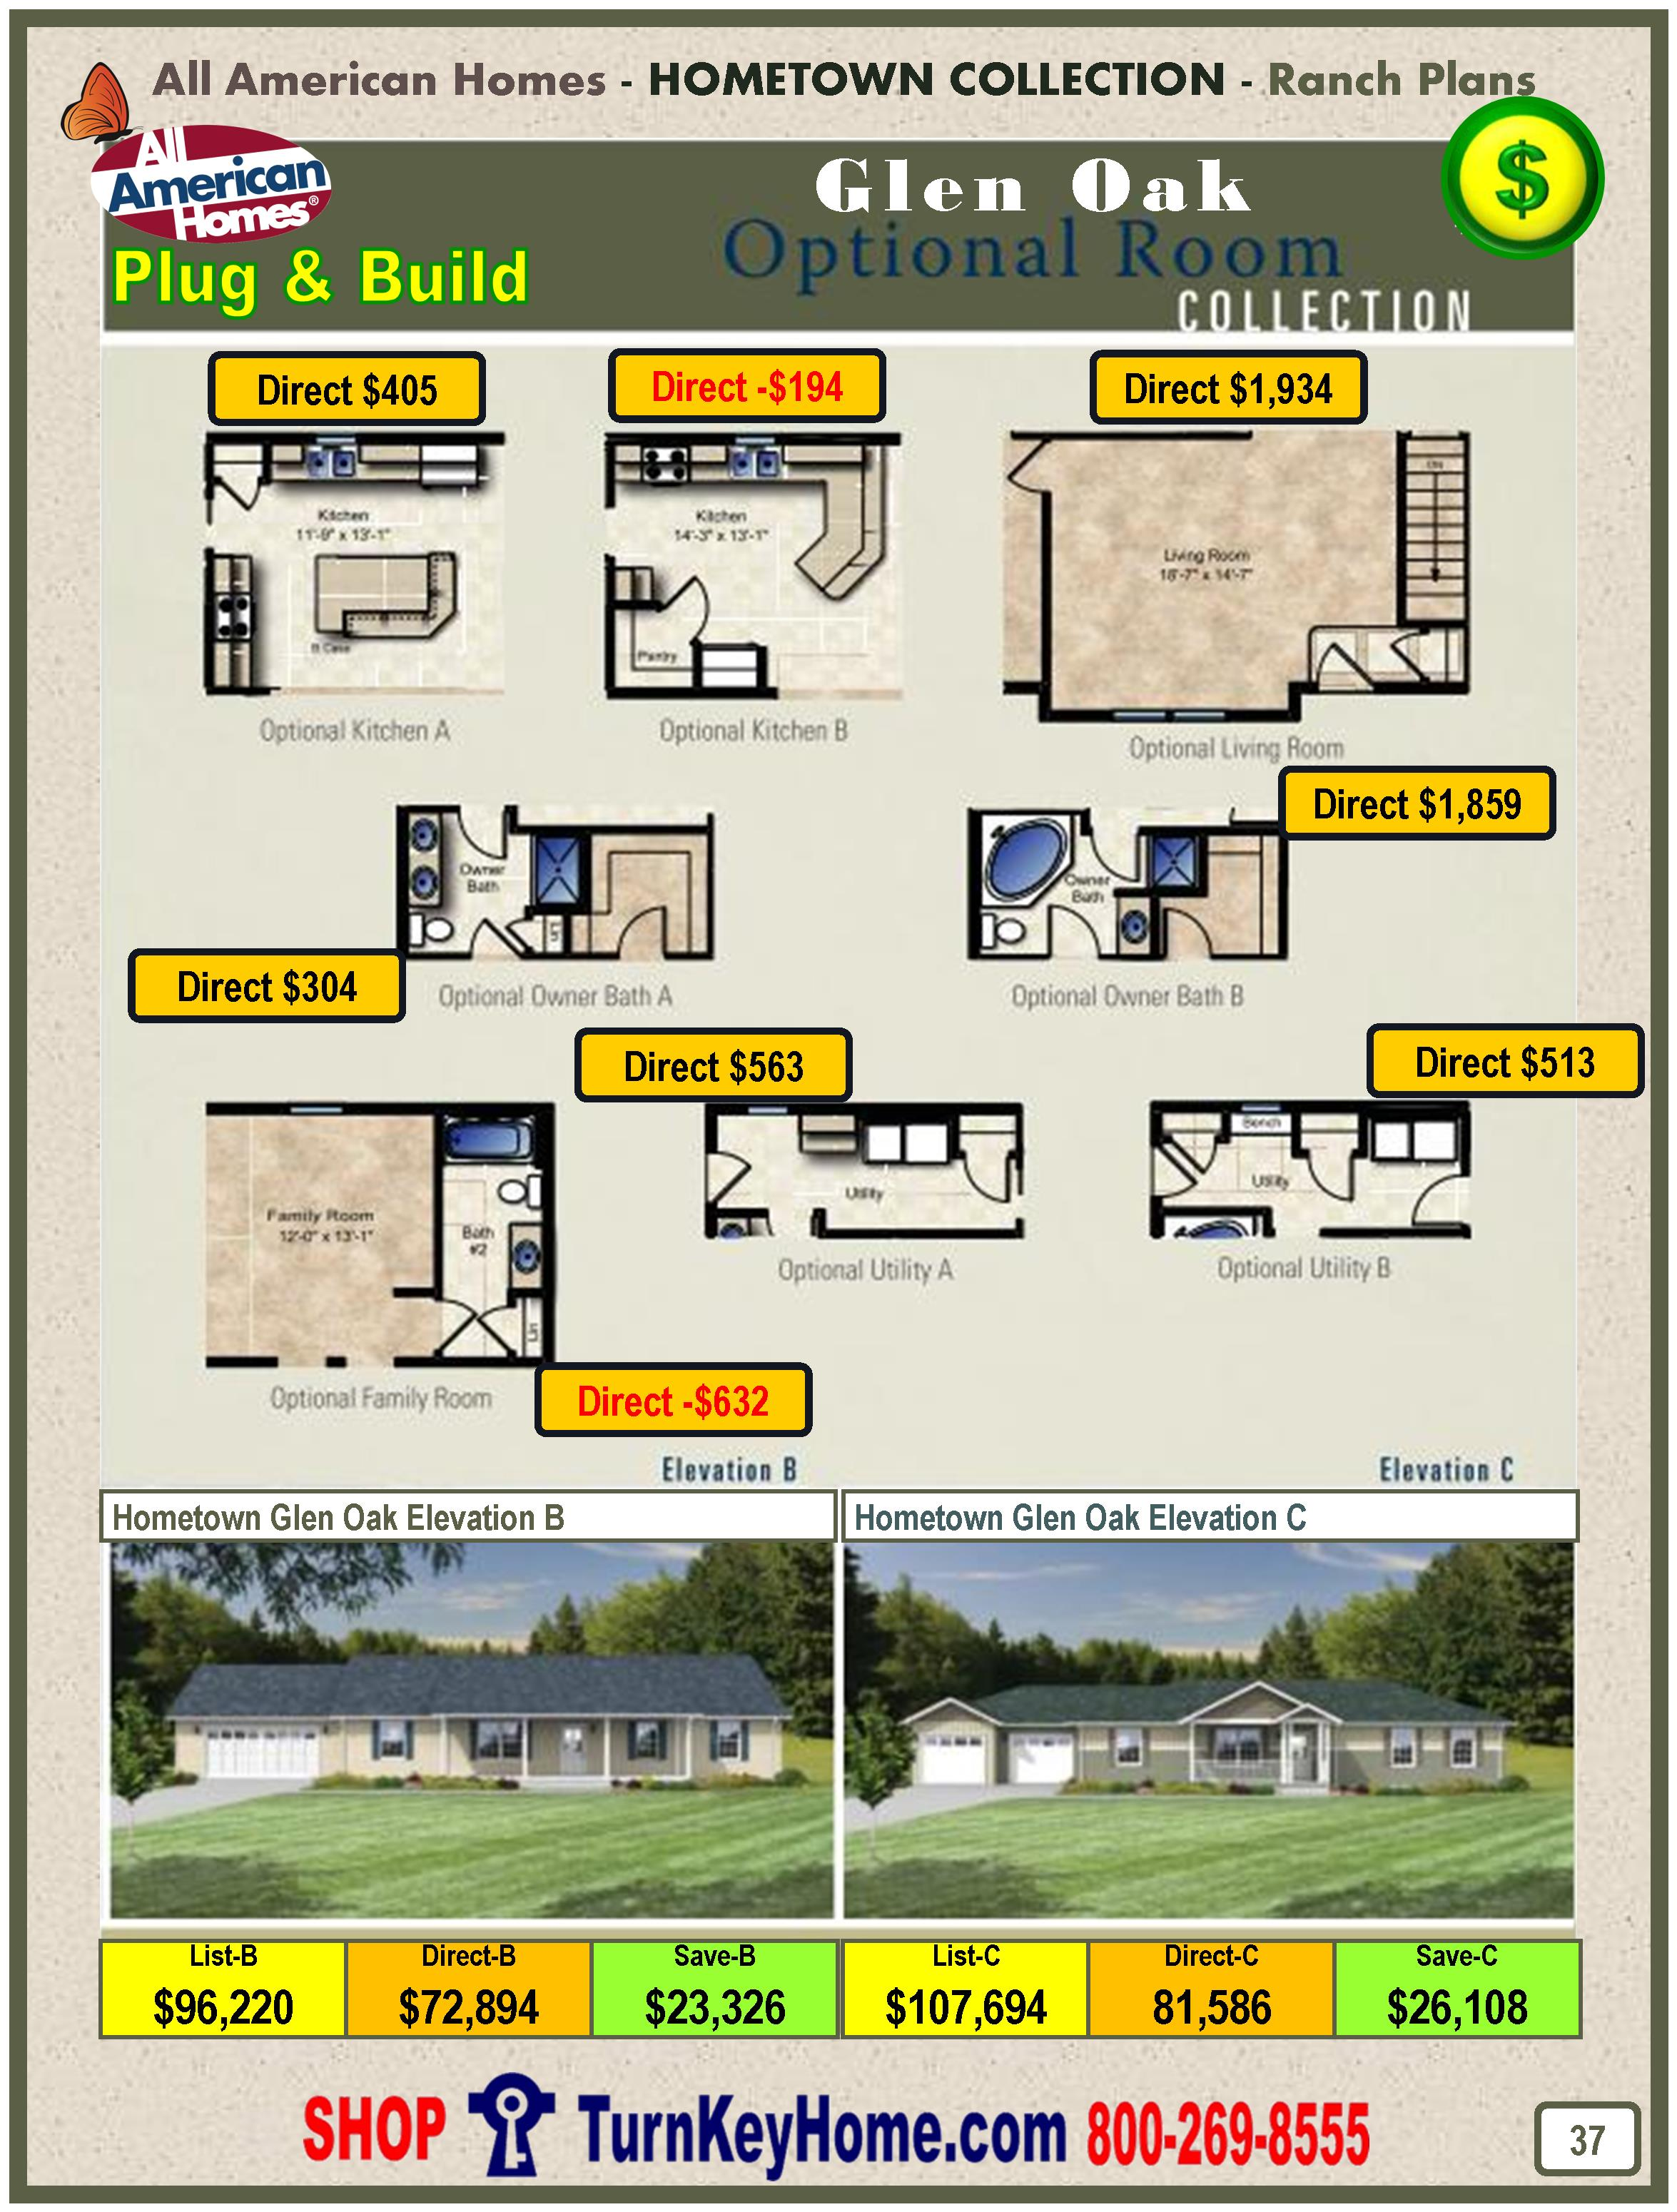 All American Homes glen oak all american home ranch hometown collection plan price